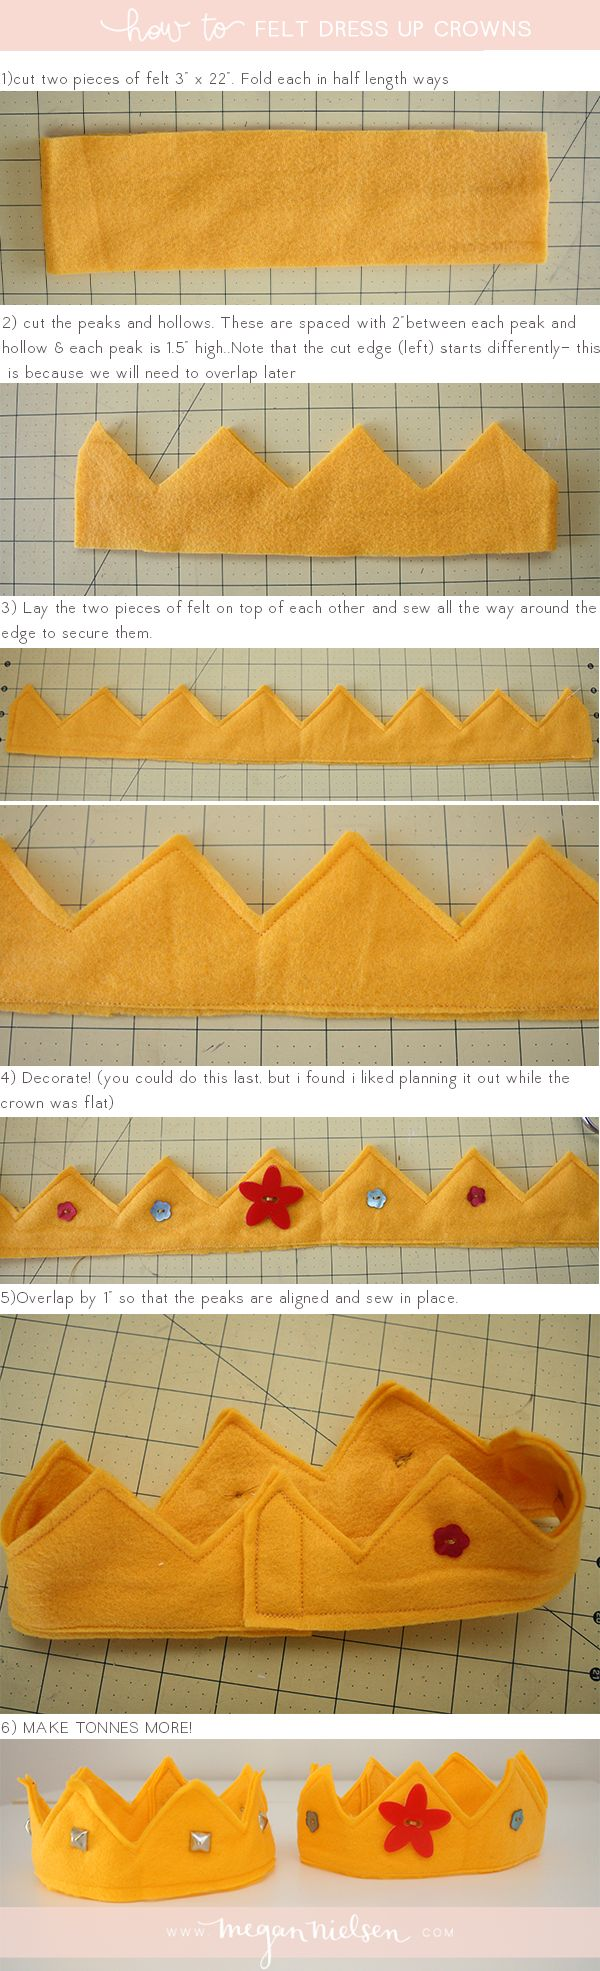 How to make felt dress up crowns